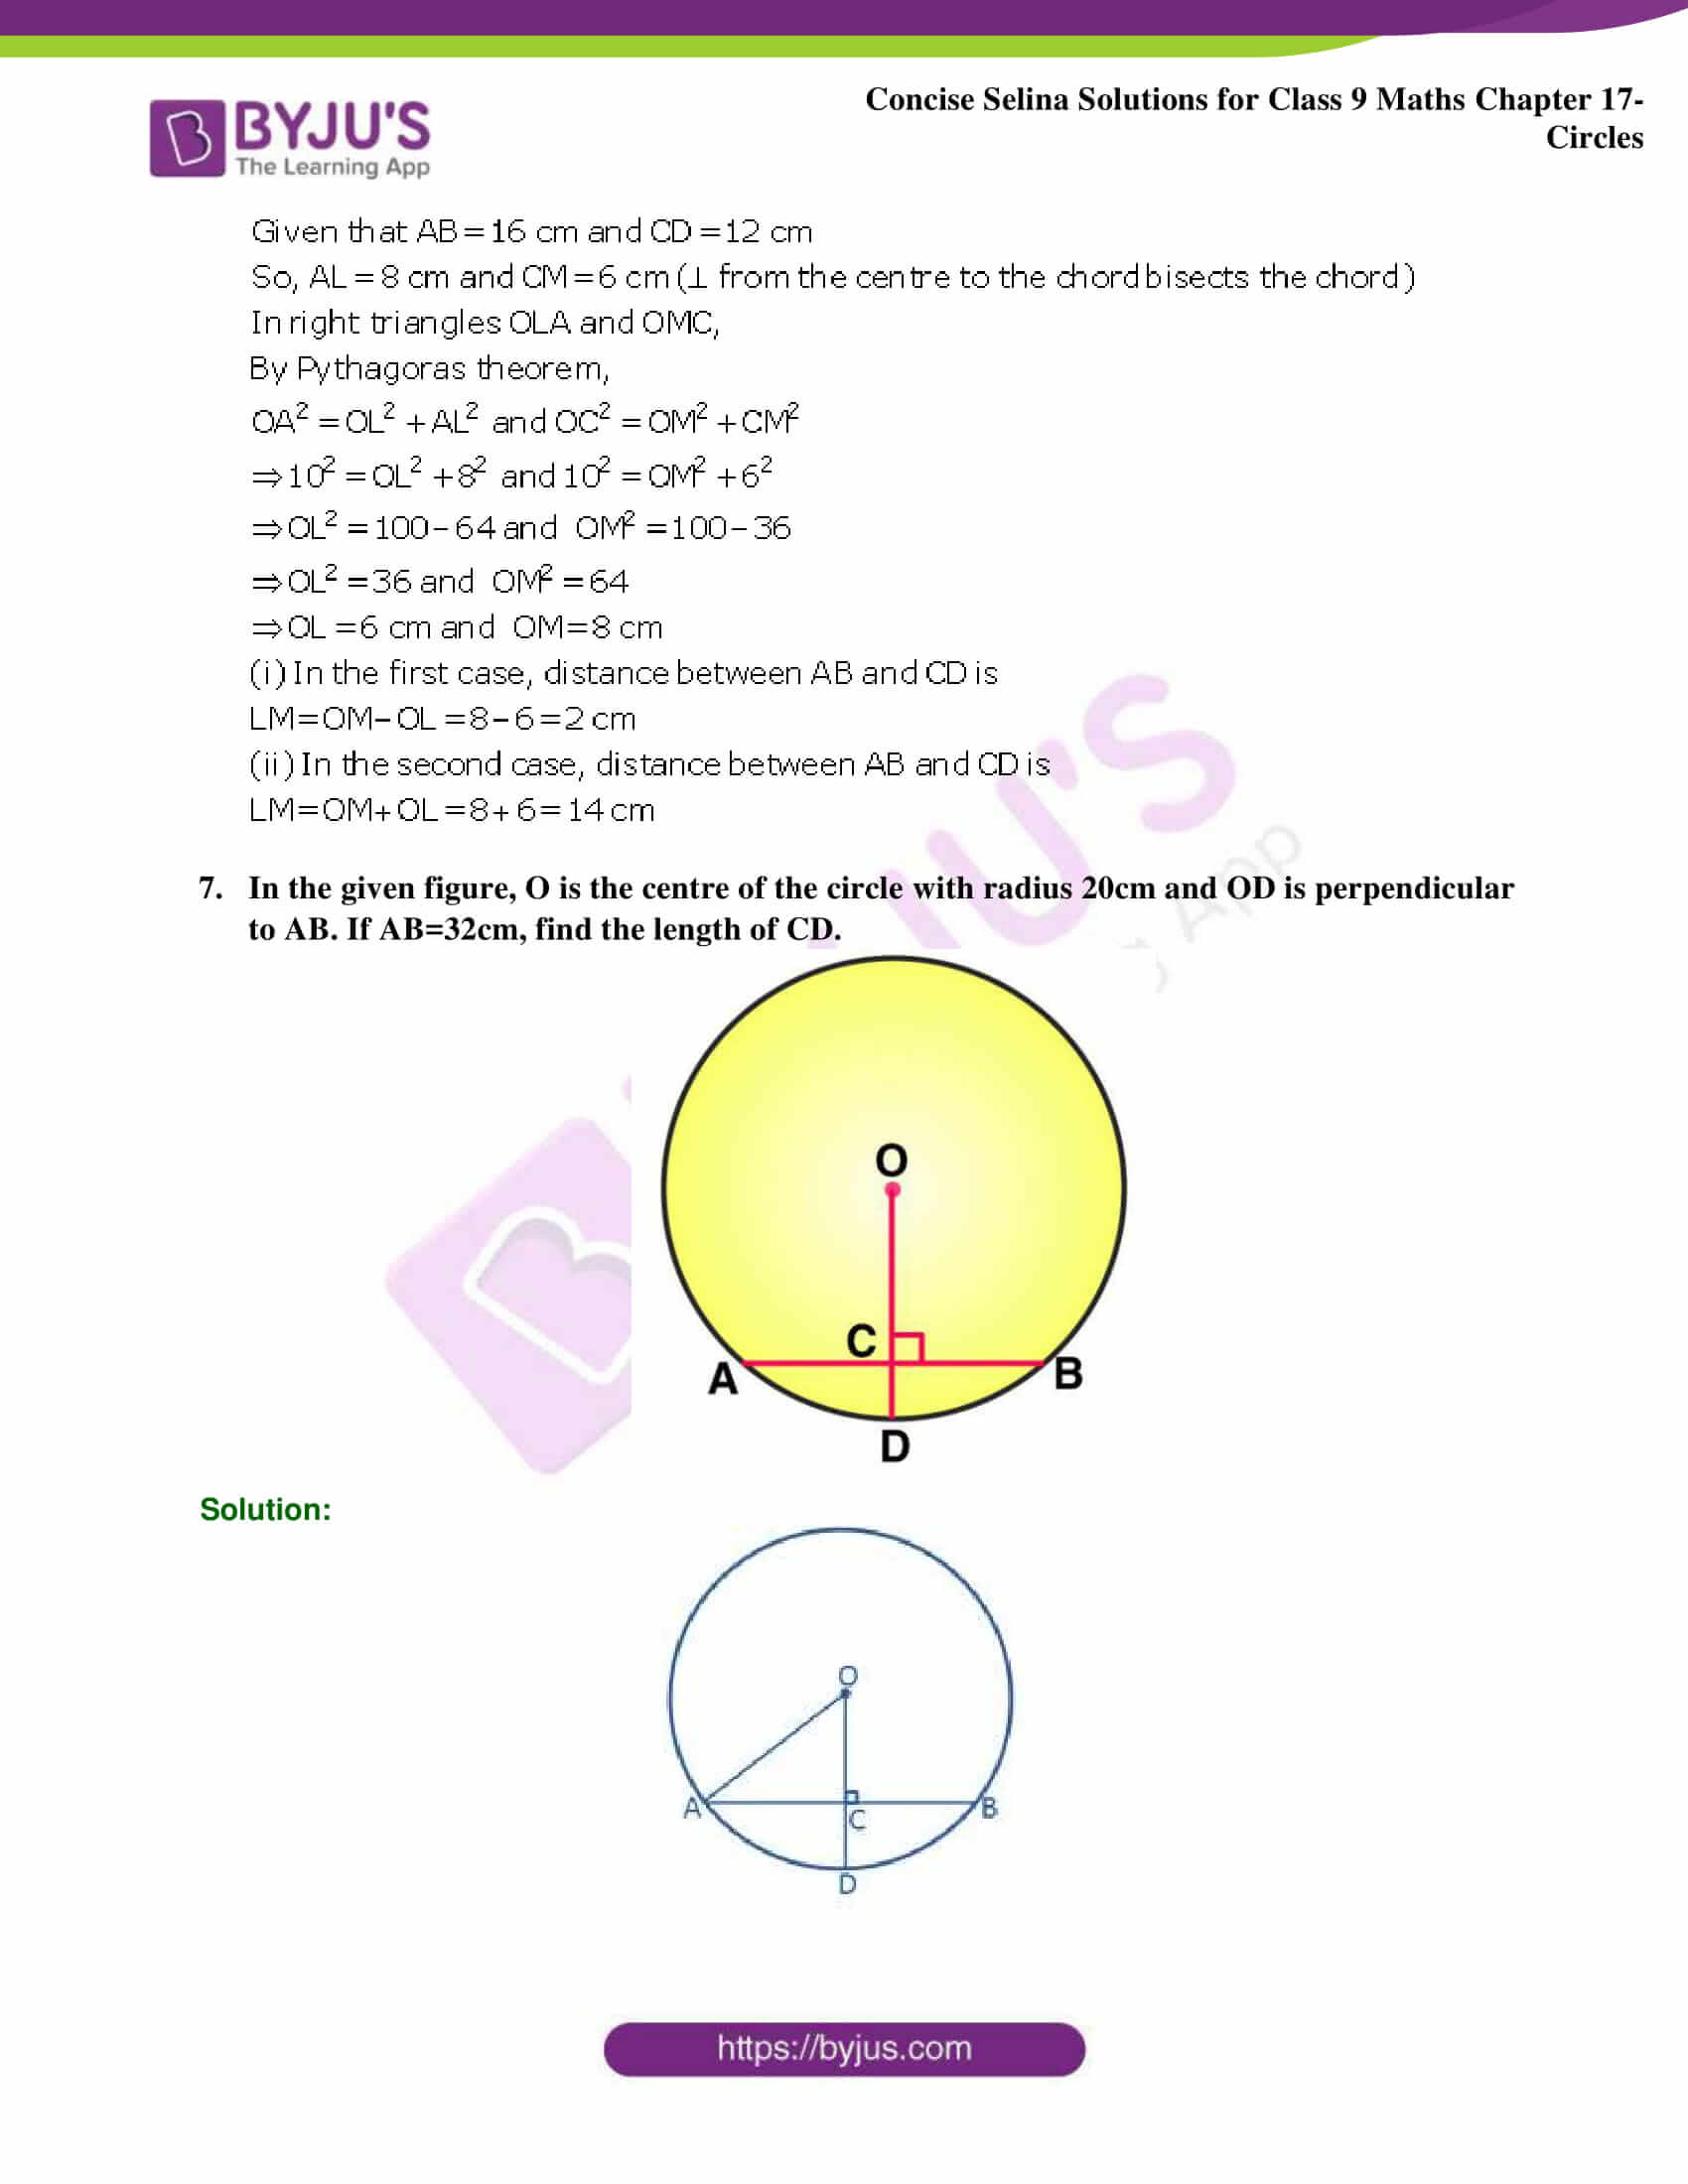 Concise Selina Solutions Class 9 Maths Chapter 17 Circles part 33